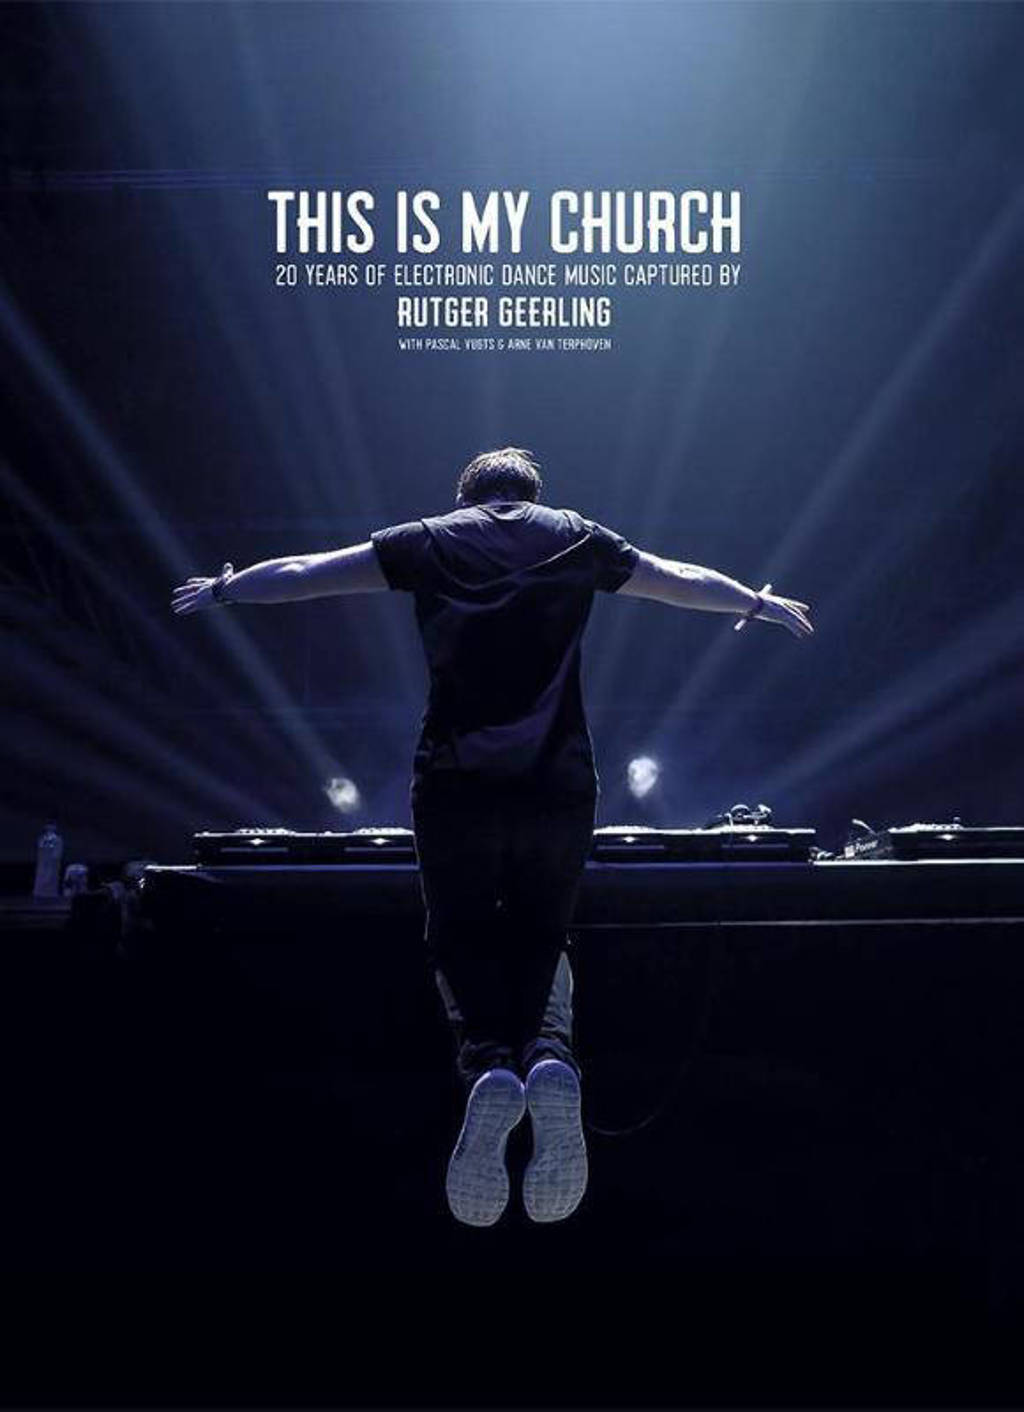 This is my church - Pascal Vugts en Arne van Terphoven